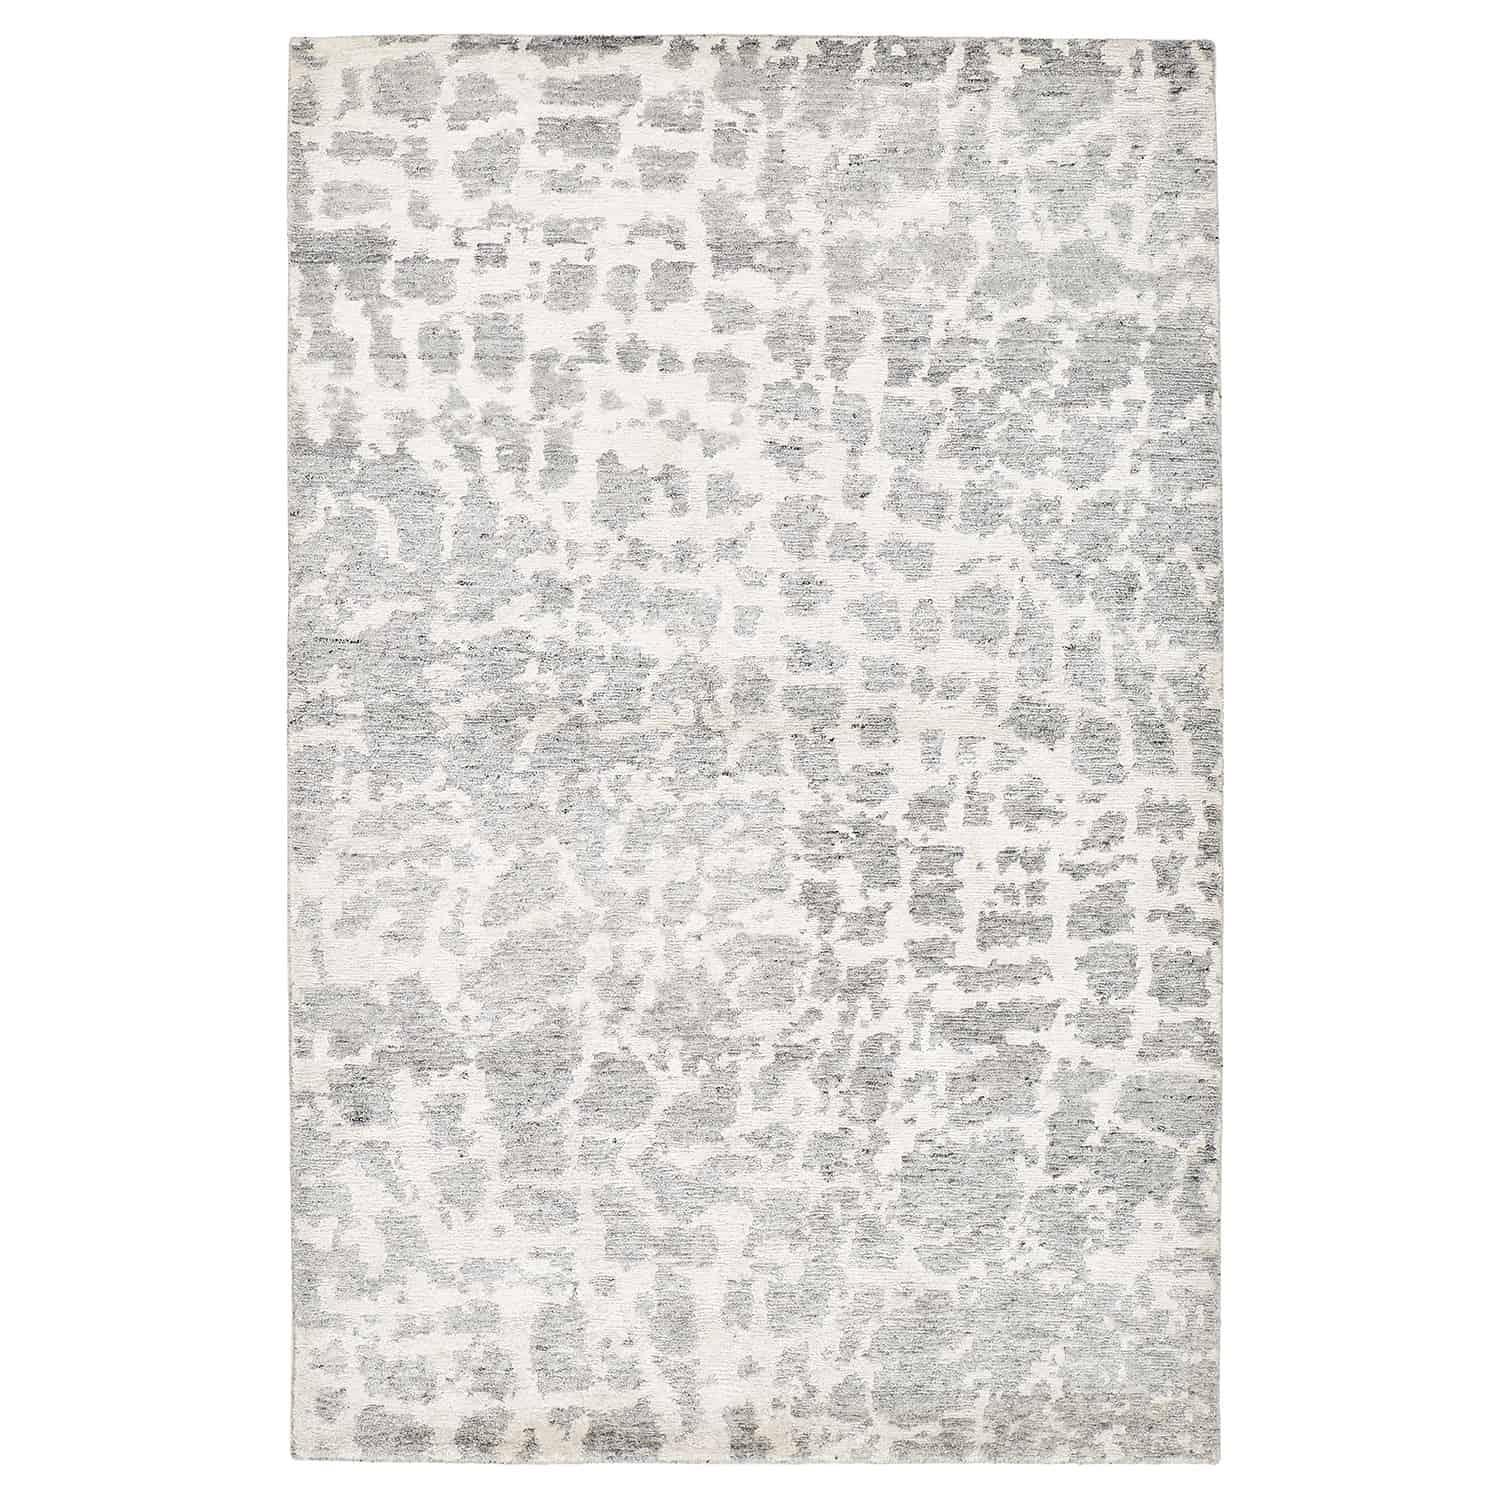 Contmeporary Abstract Rug from ABC Home